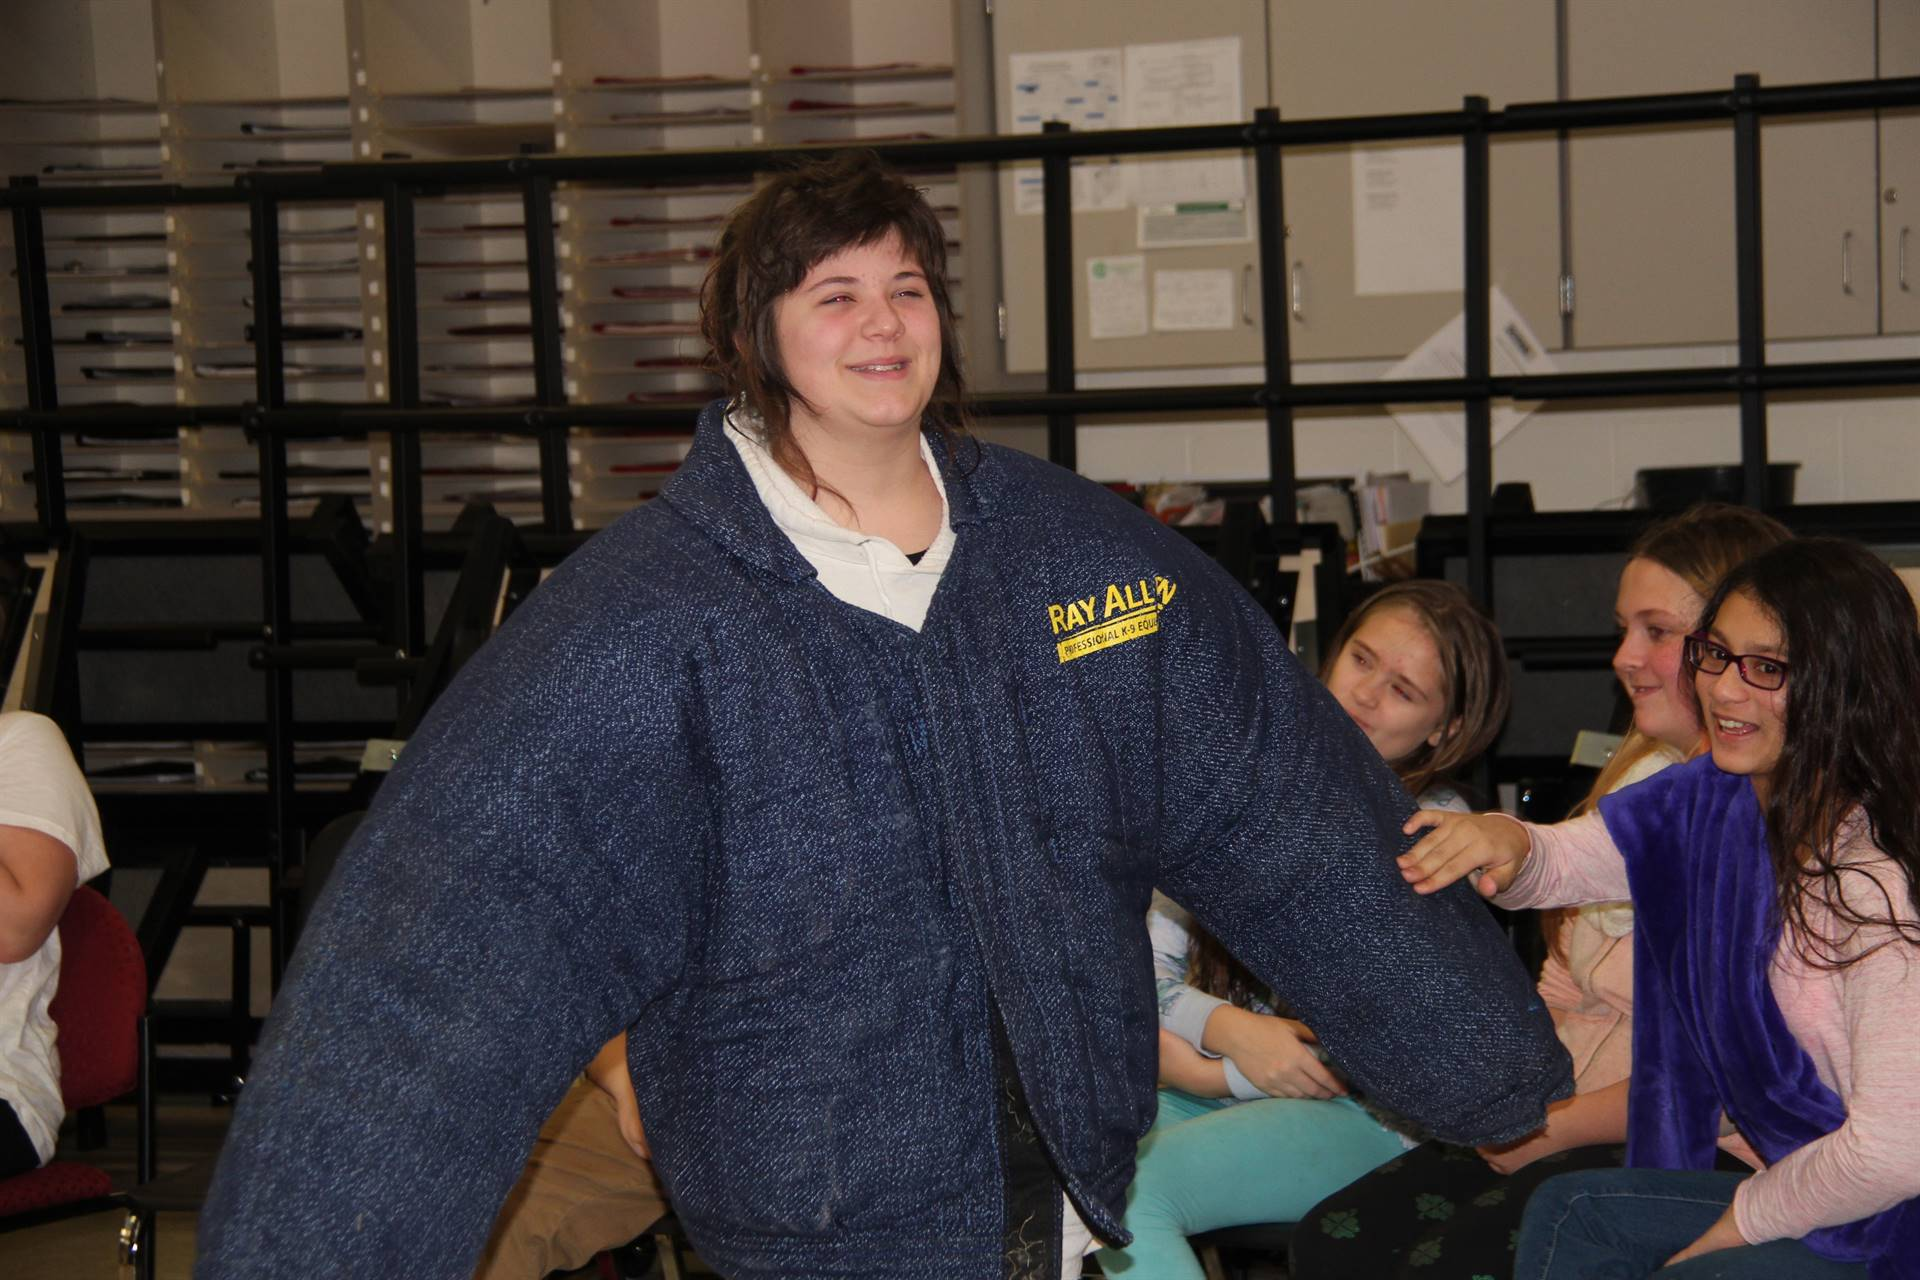 student demonstrating what a jacket looks like